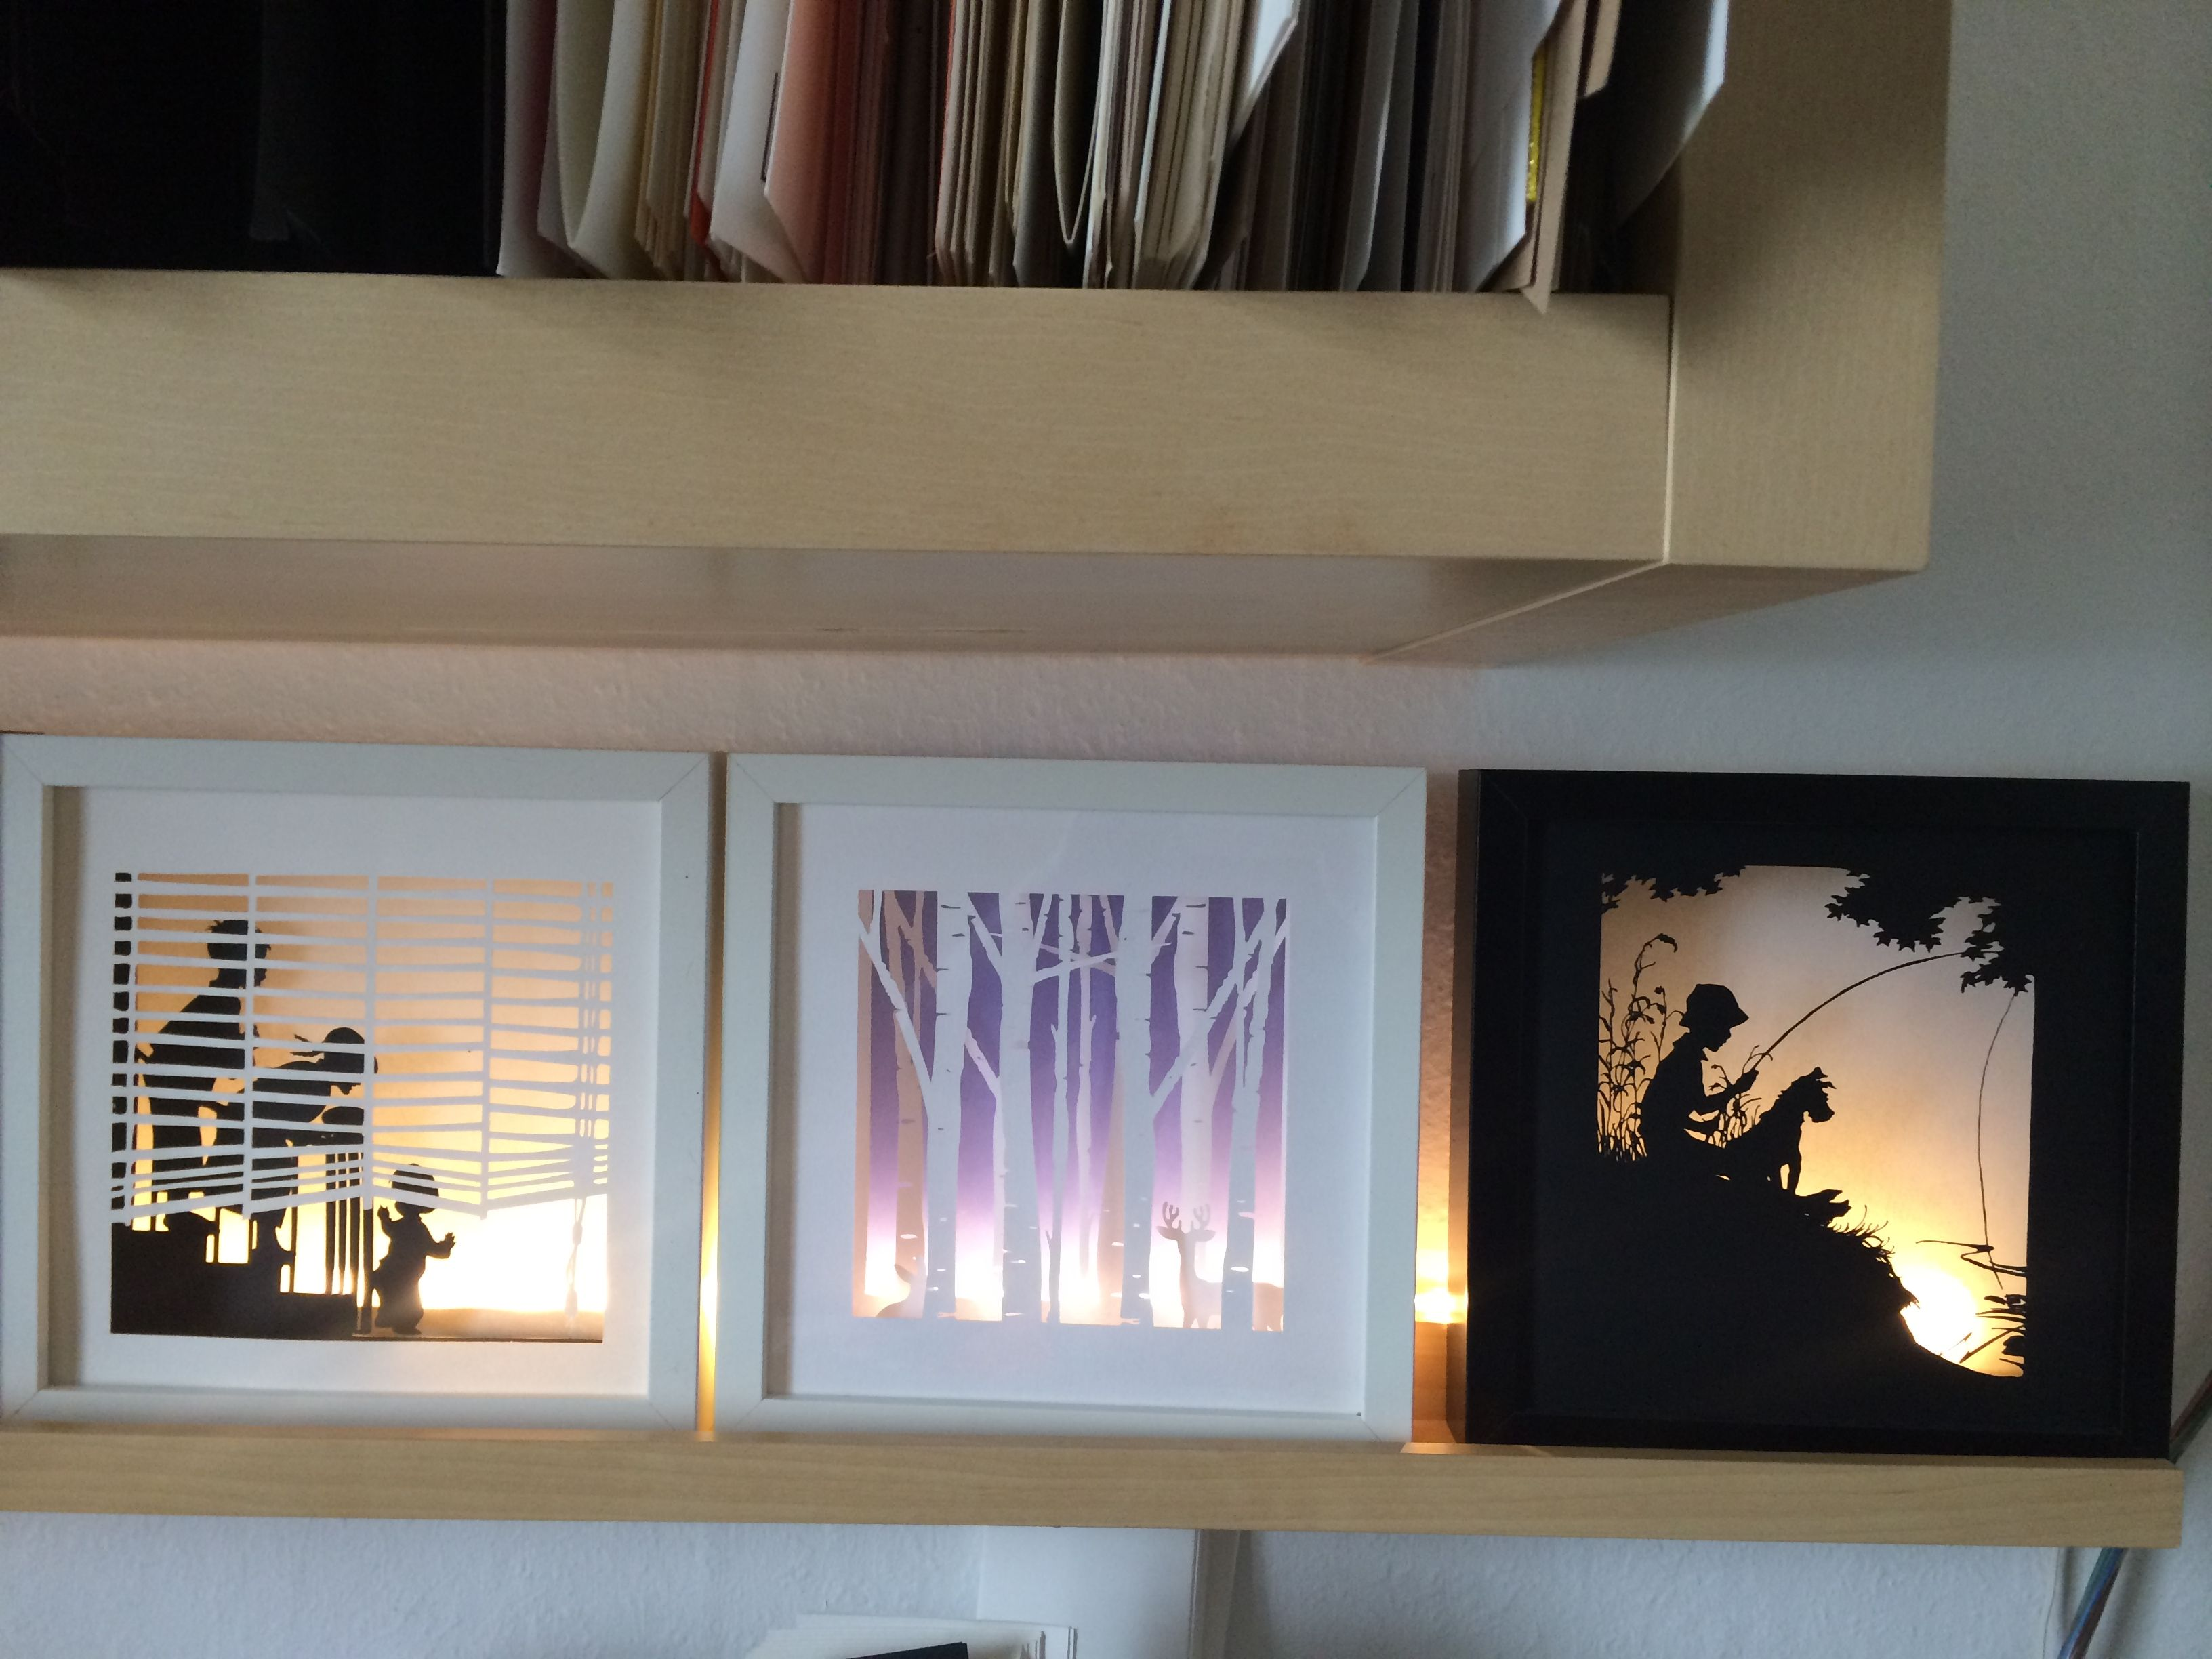 Shadow Box Decorating Ideas Shadow Box Ideas Pinterest How To Decorate Shadow Box Picture Silhouette Cameo Tutorials Silhouette Cameo Projects Silhouette Cameo